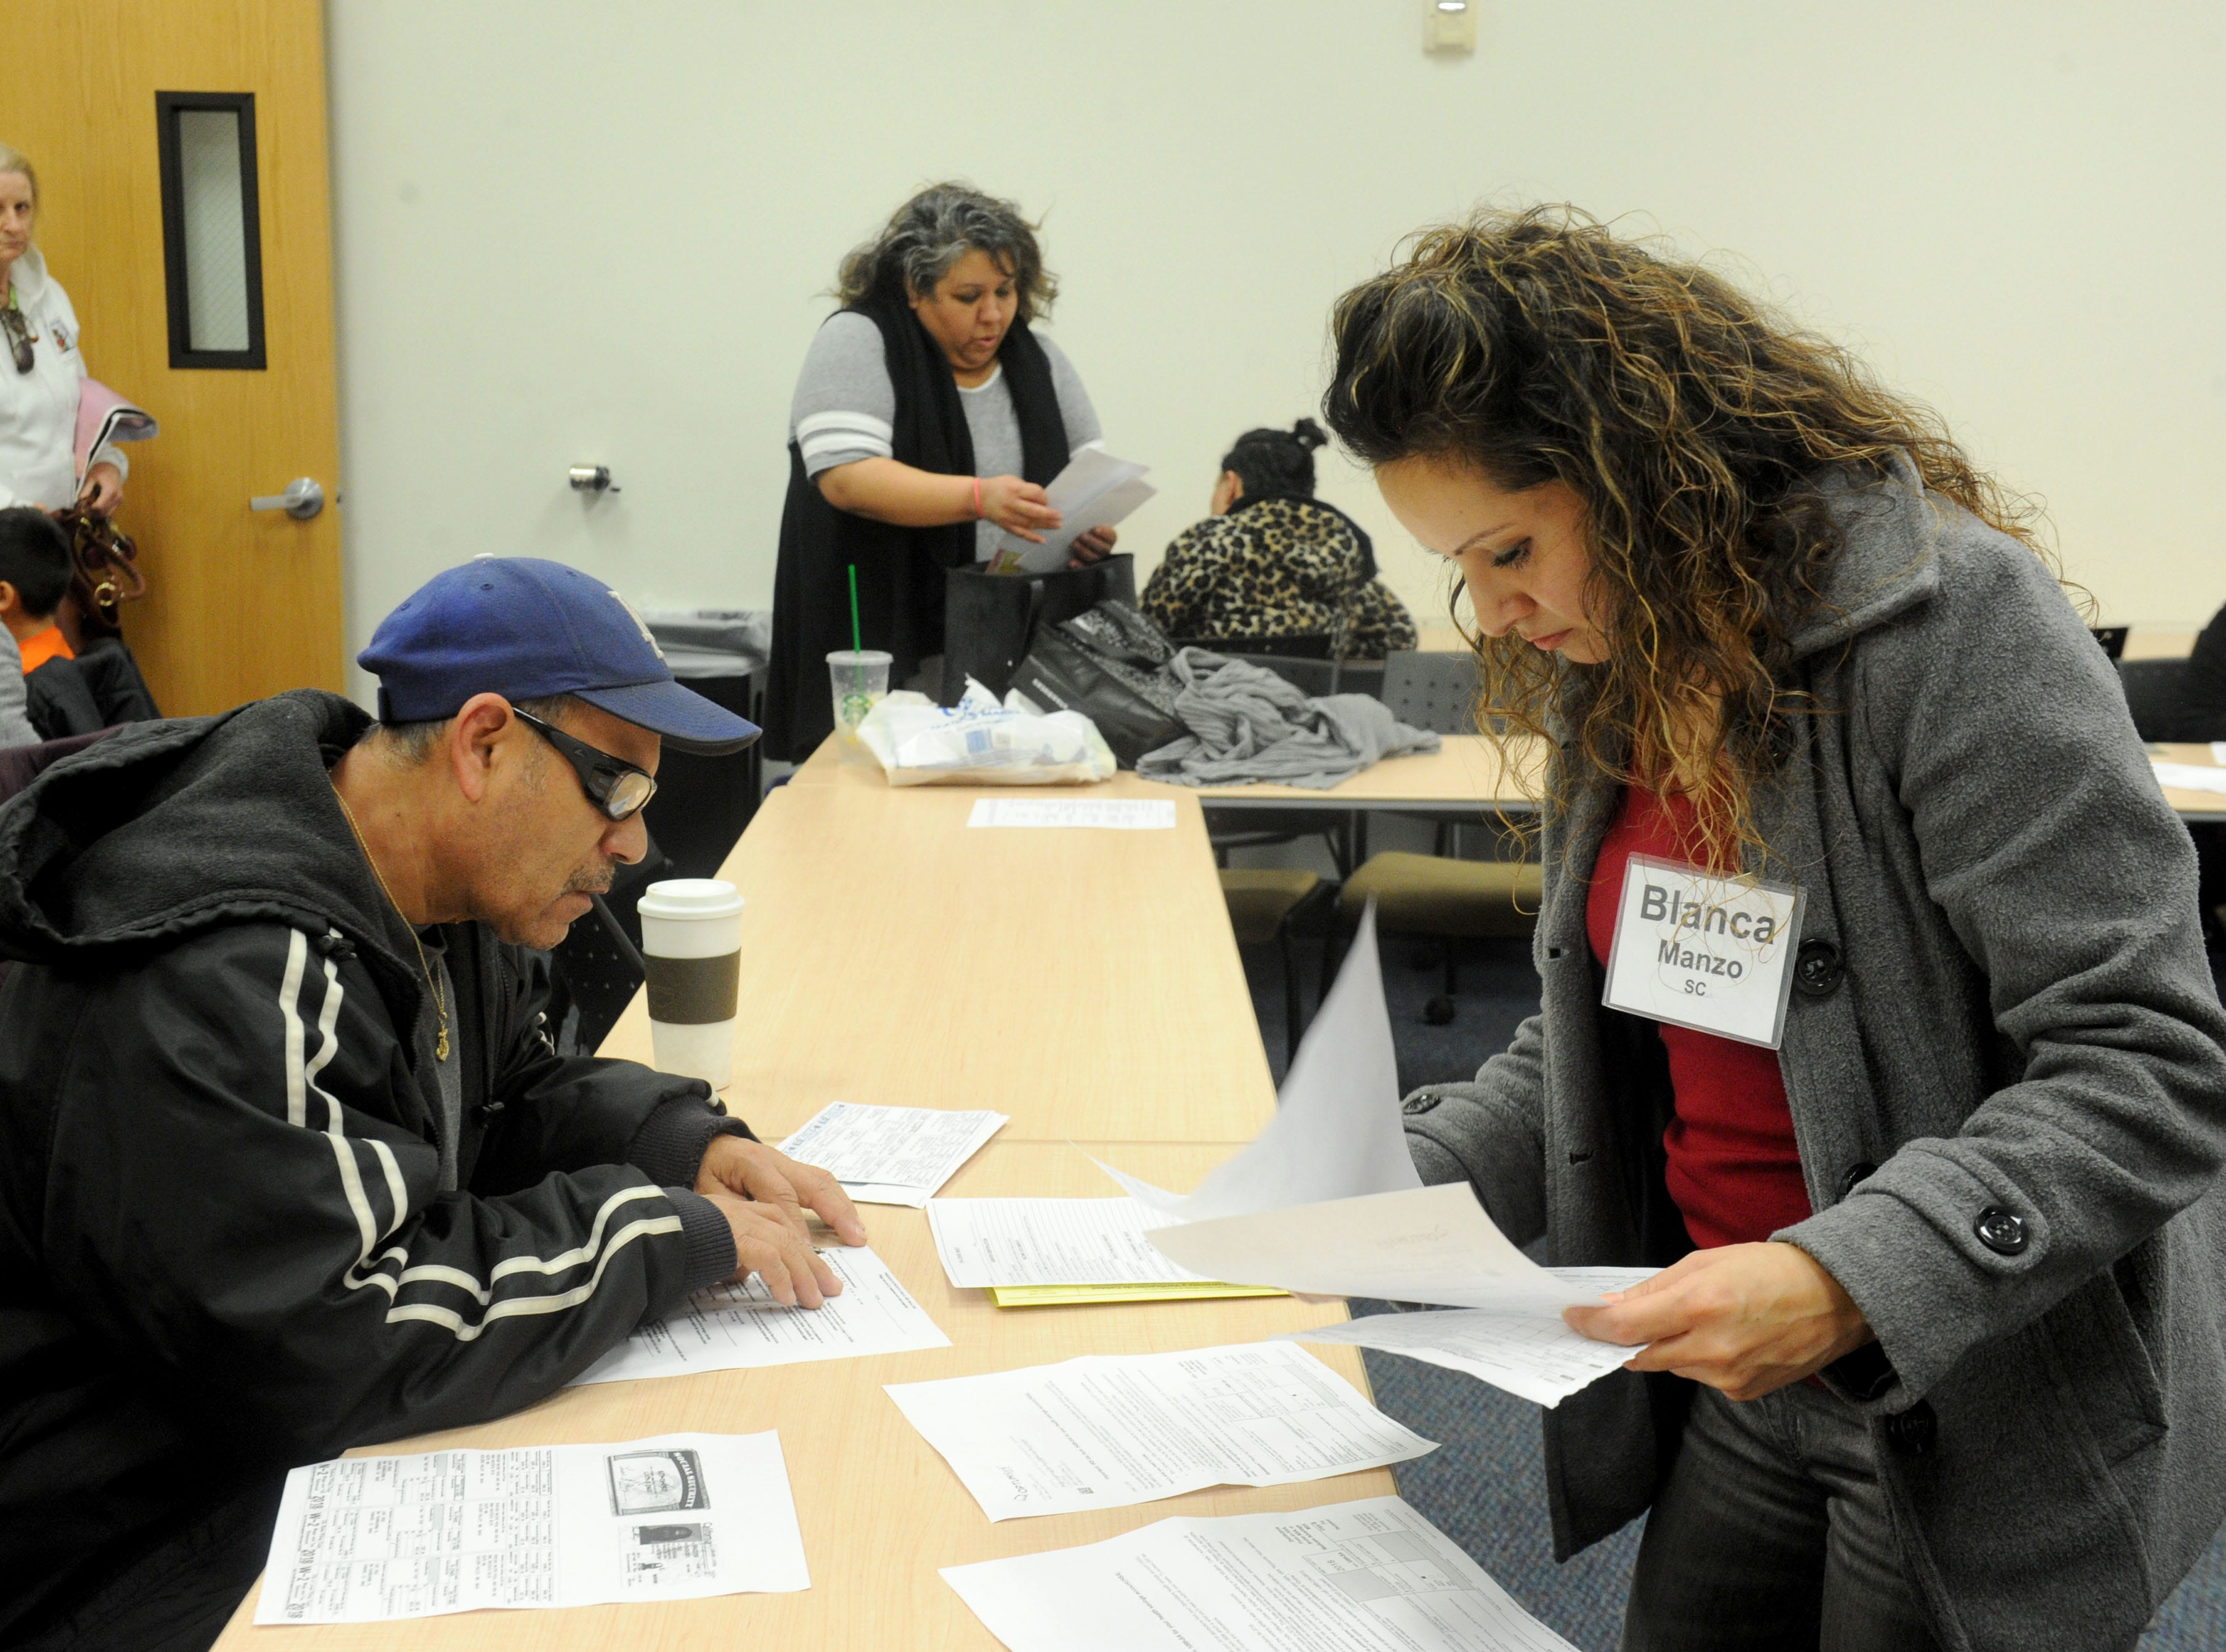 Luis Cruz, left, gets help on his taxes from Blanca Manzo through the United Way's Volunteer Income Tax Assistance program recently at the California Lutheran University extension in Oxnard.